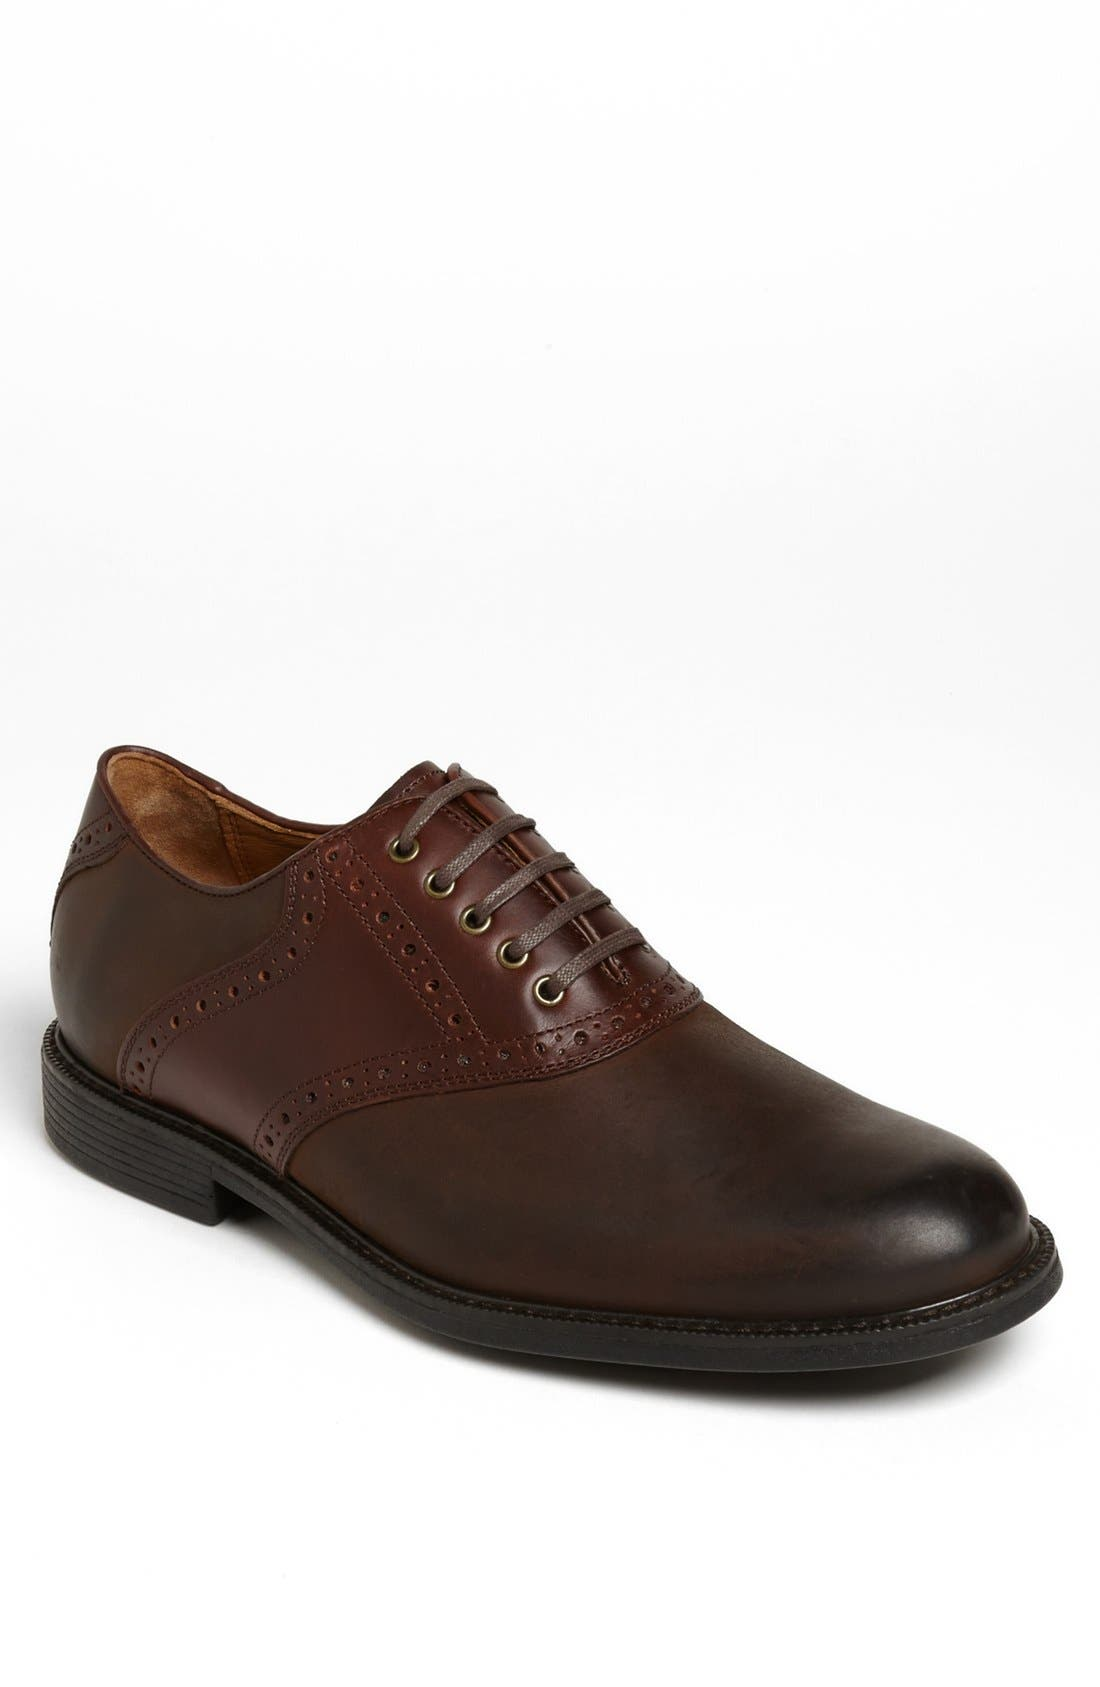 'Cardell' Waterproof Saddle Oxford,                             Main thumbnail 1, color,                             200